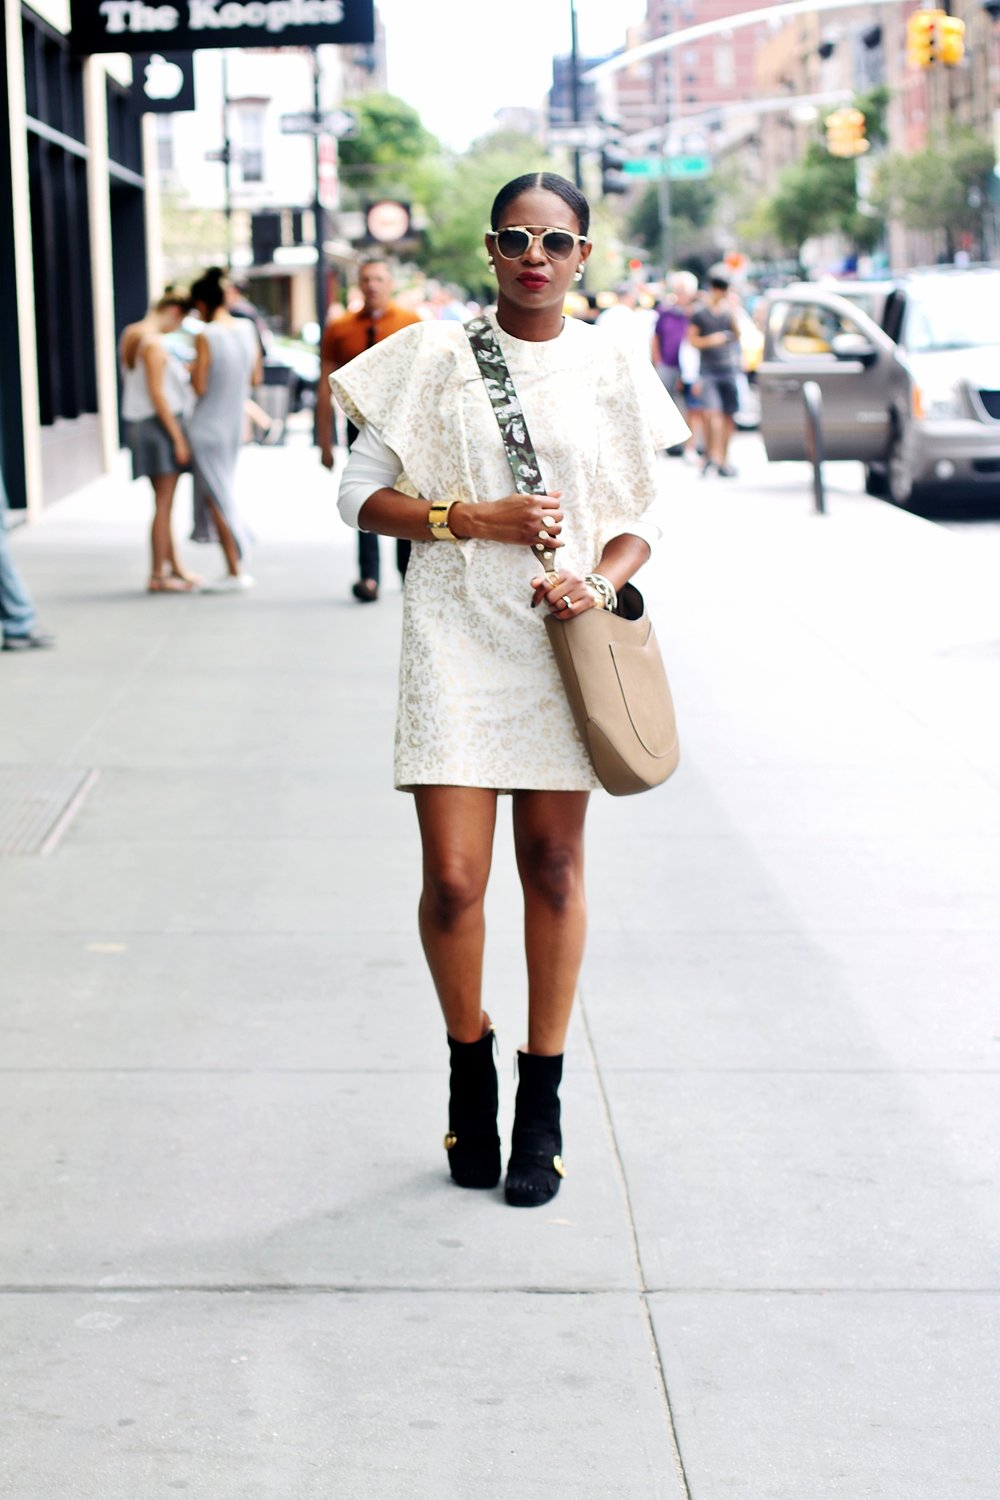 STREET STYLE PHOTOS BY CANDACE REED